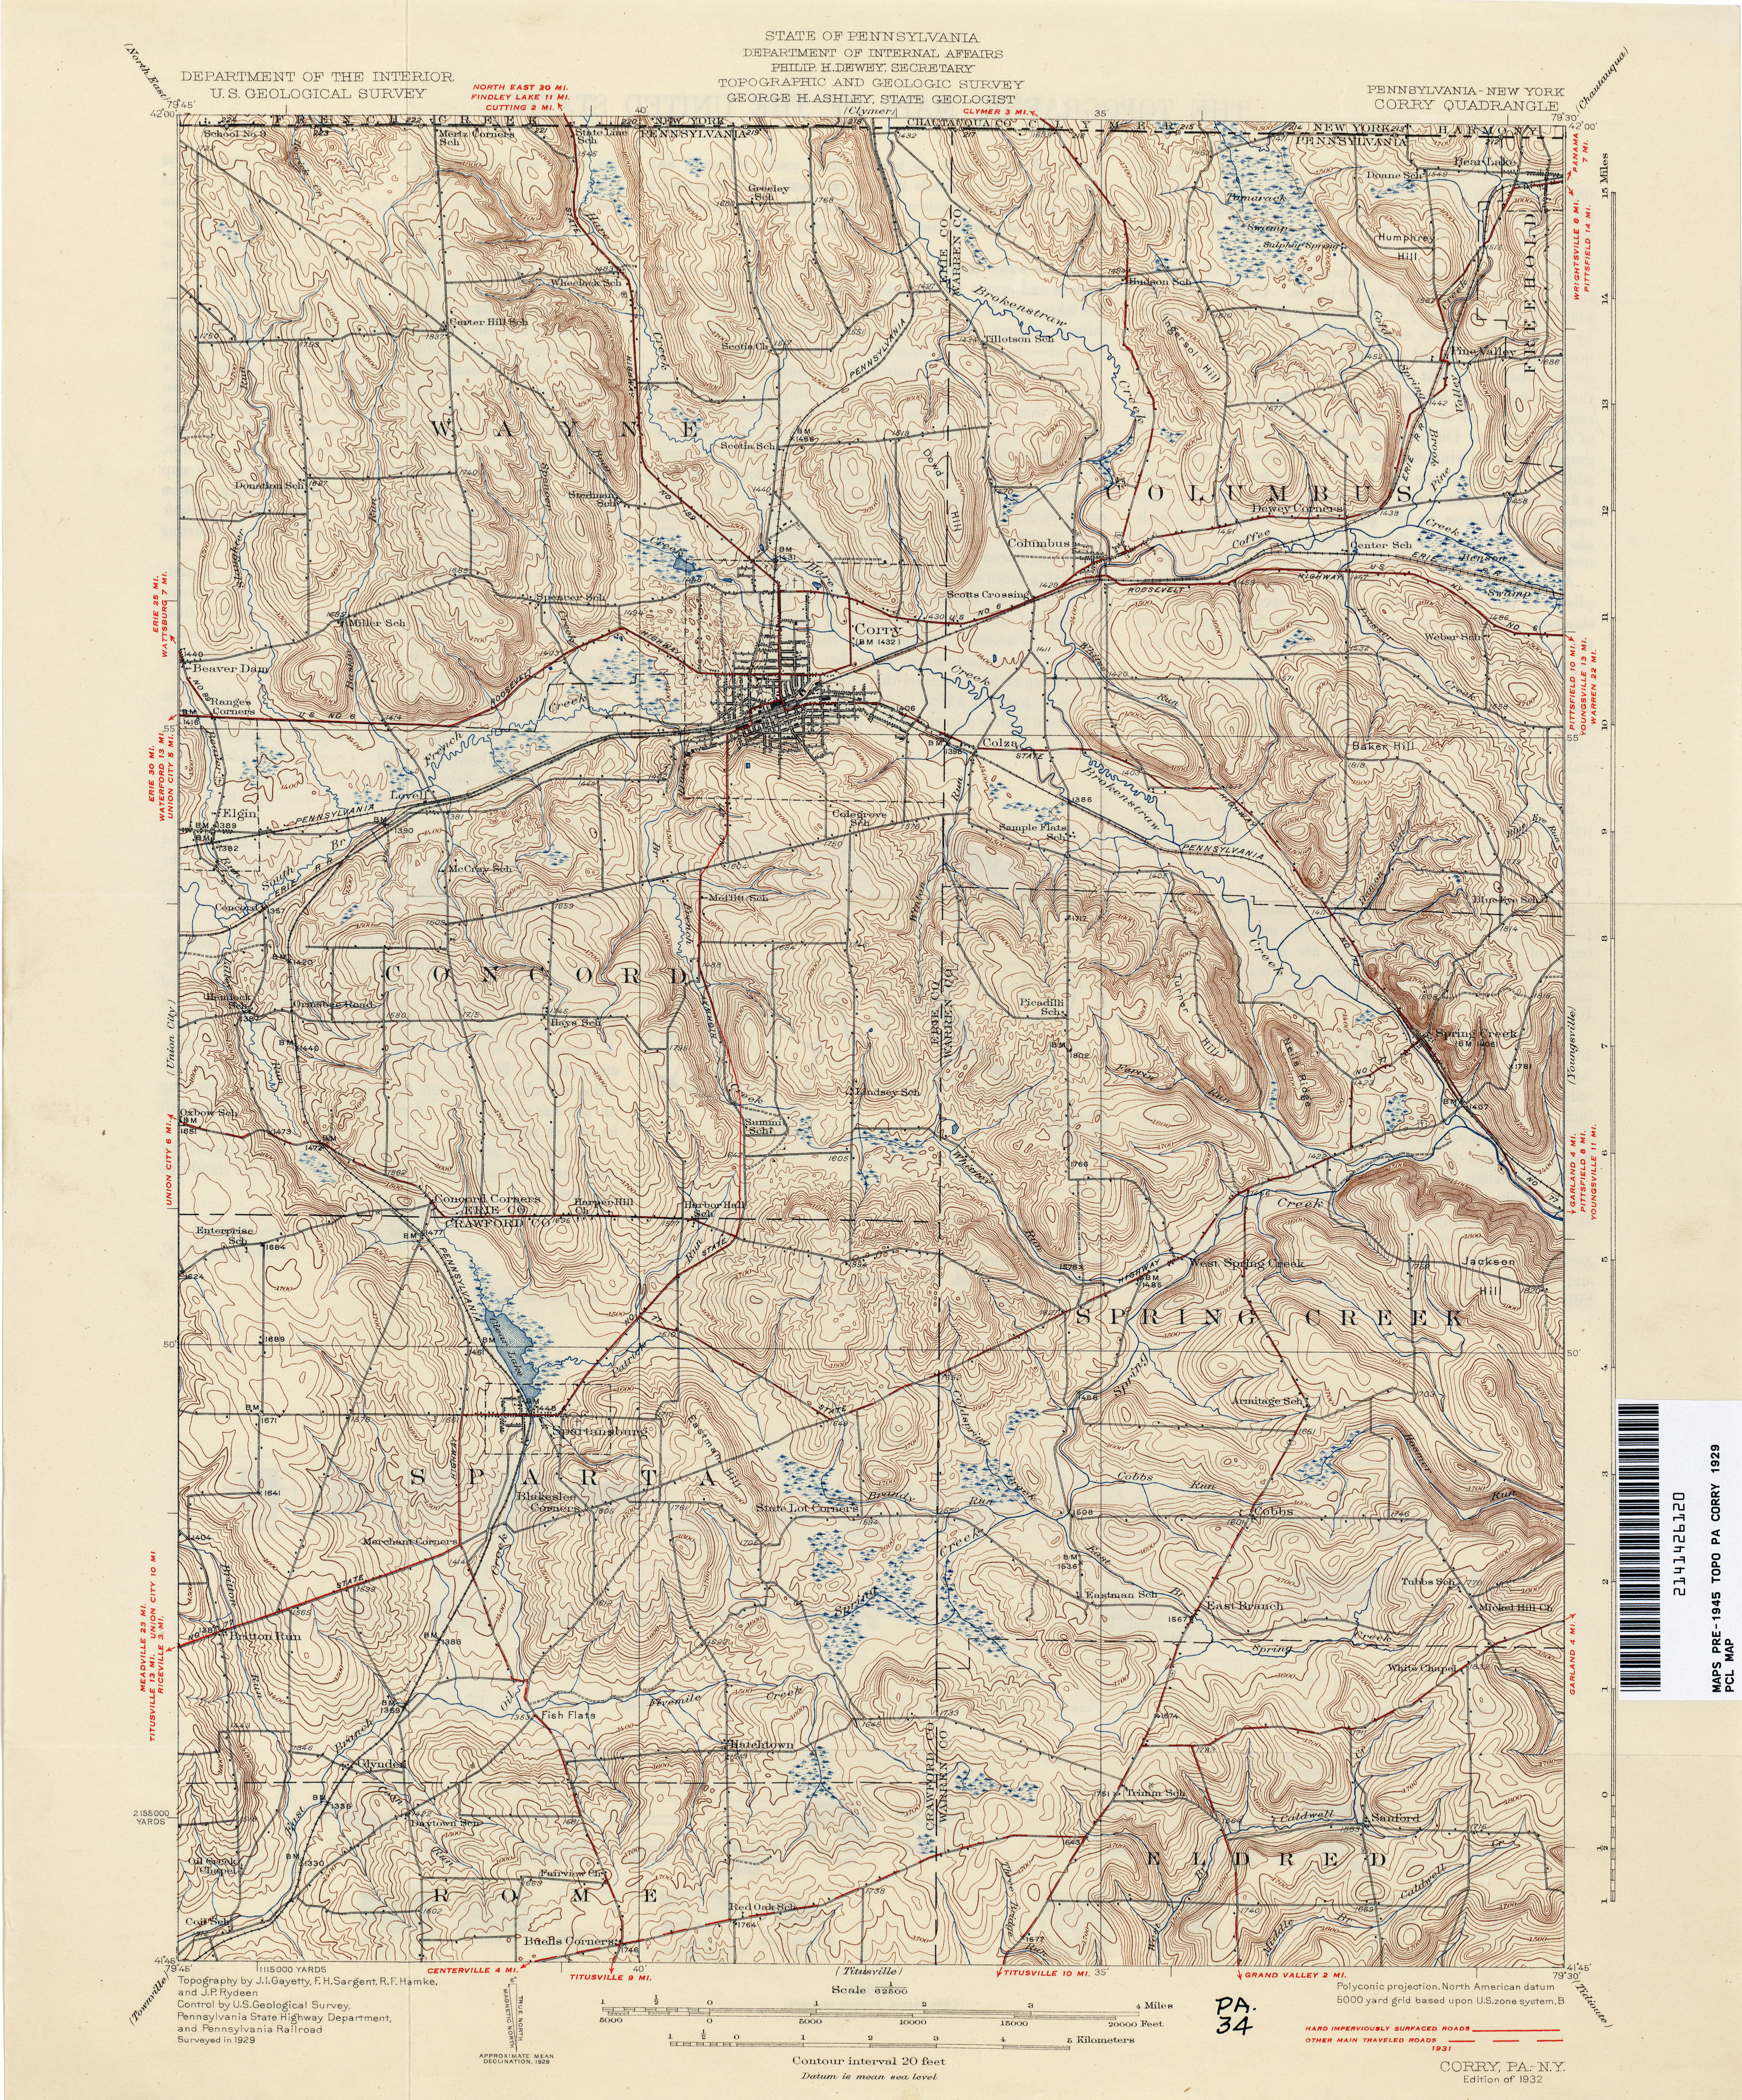 Pennsylvania historical topographic maps perry castaeda map pennsylvania historical topographic maps publicscrutiny Images